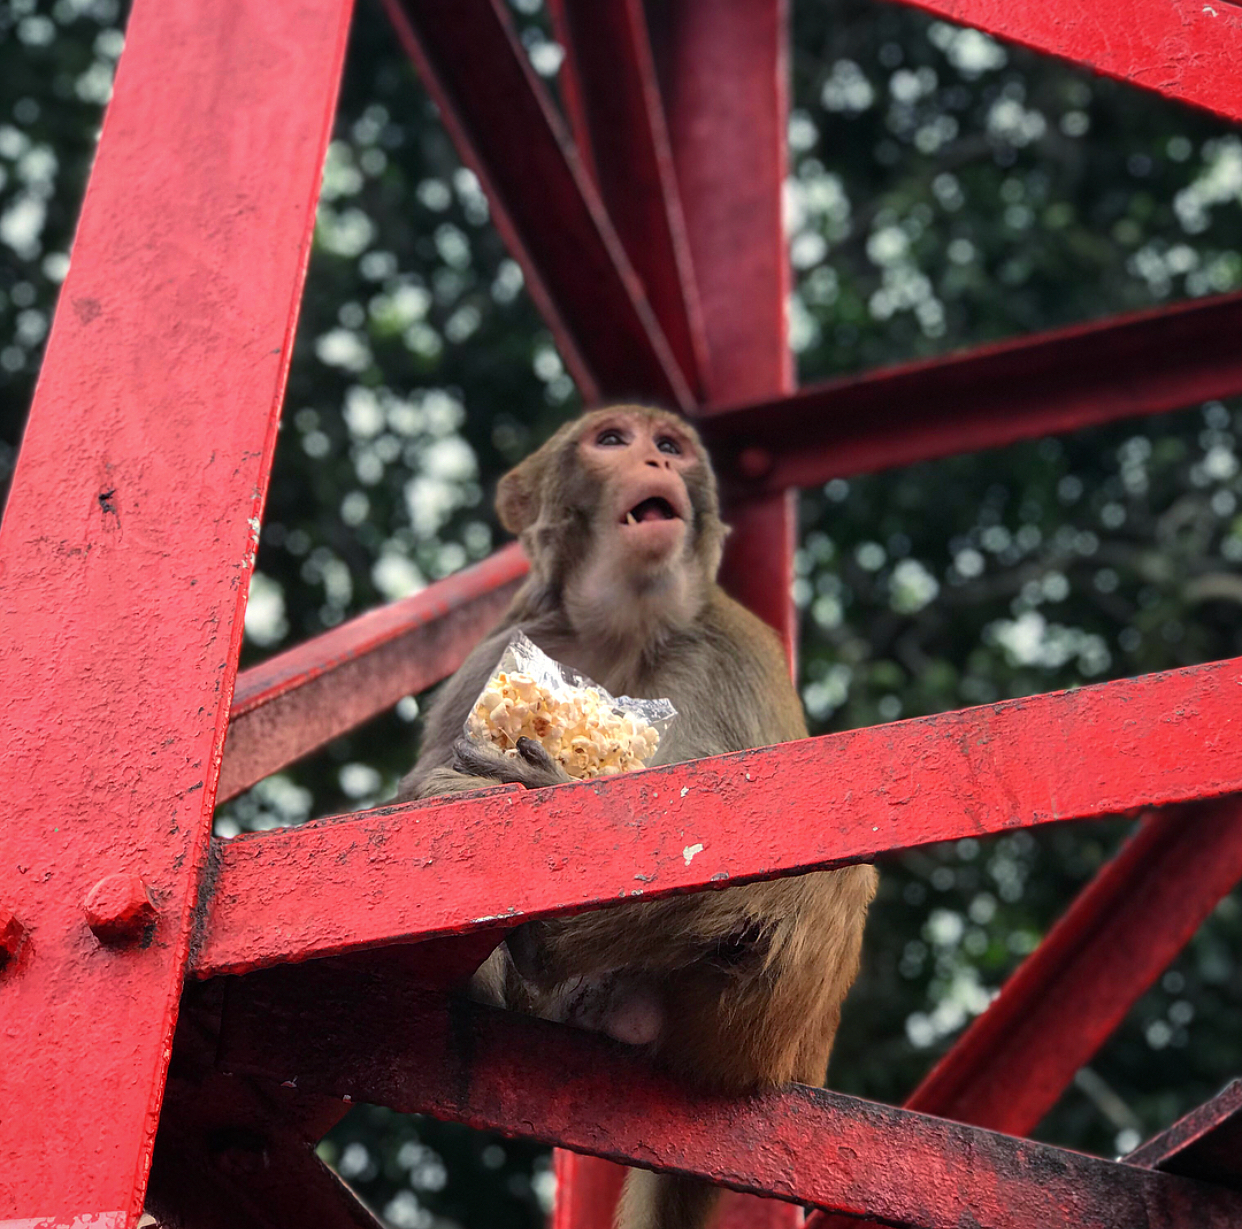 The cheeky monkeys often steal food (such as popcorn) from the street vendors.